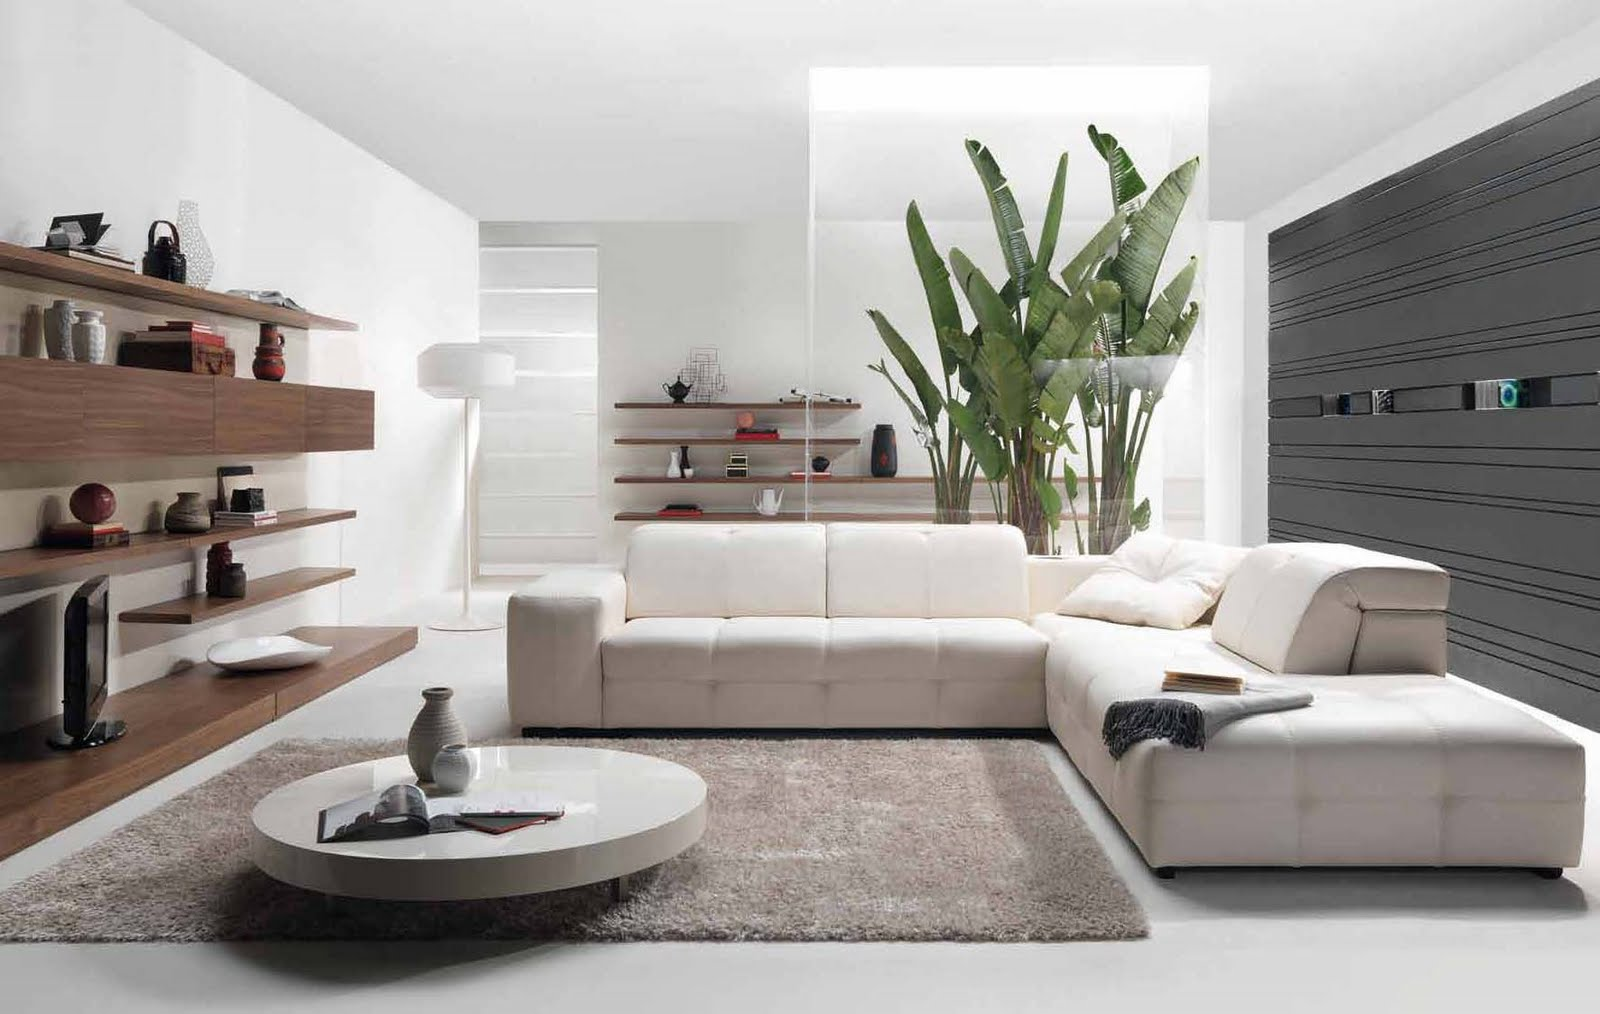 Future house design modern living room interior design for Living room design styles